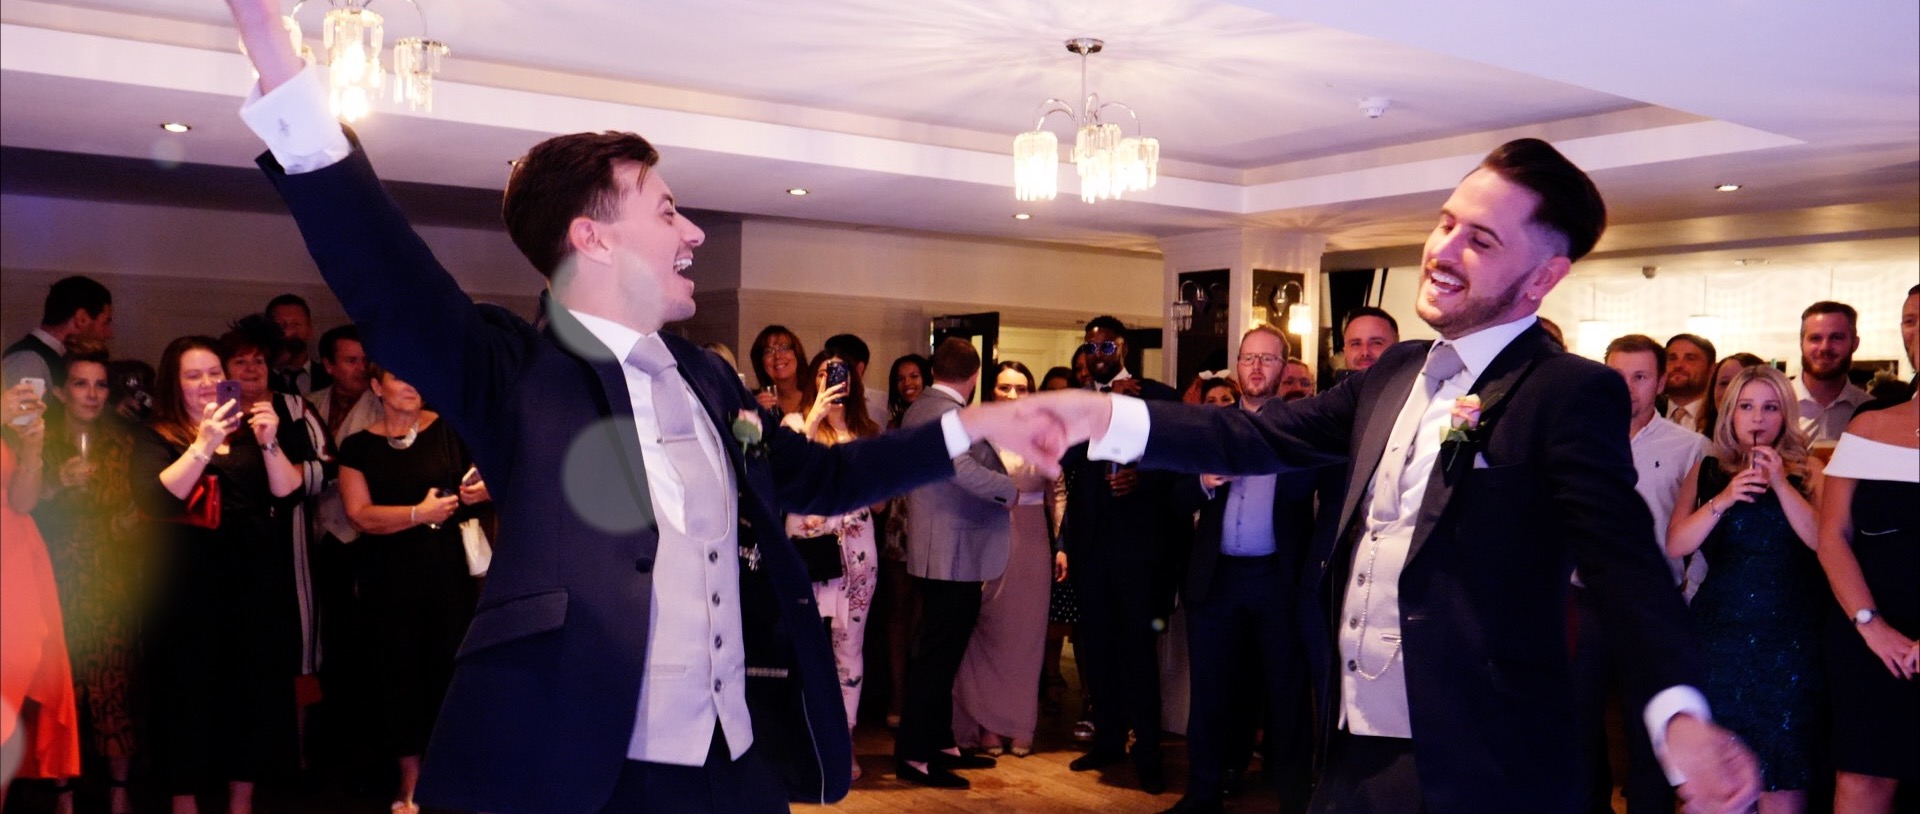 The Rayleigh Club Weddings and Events